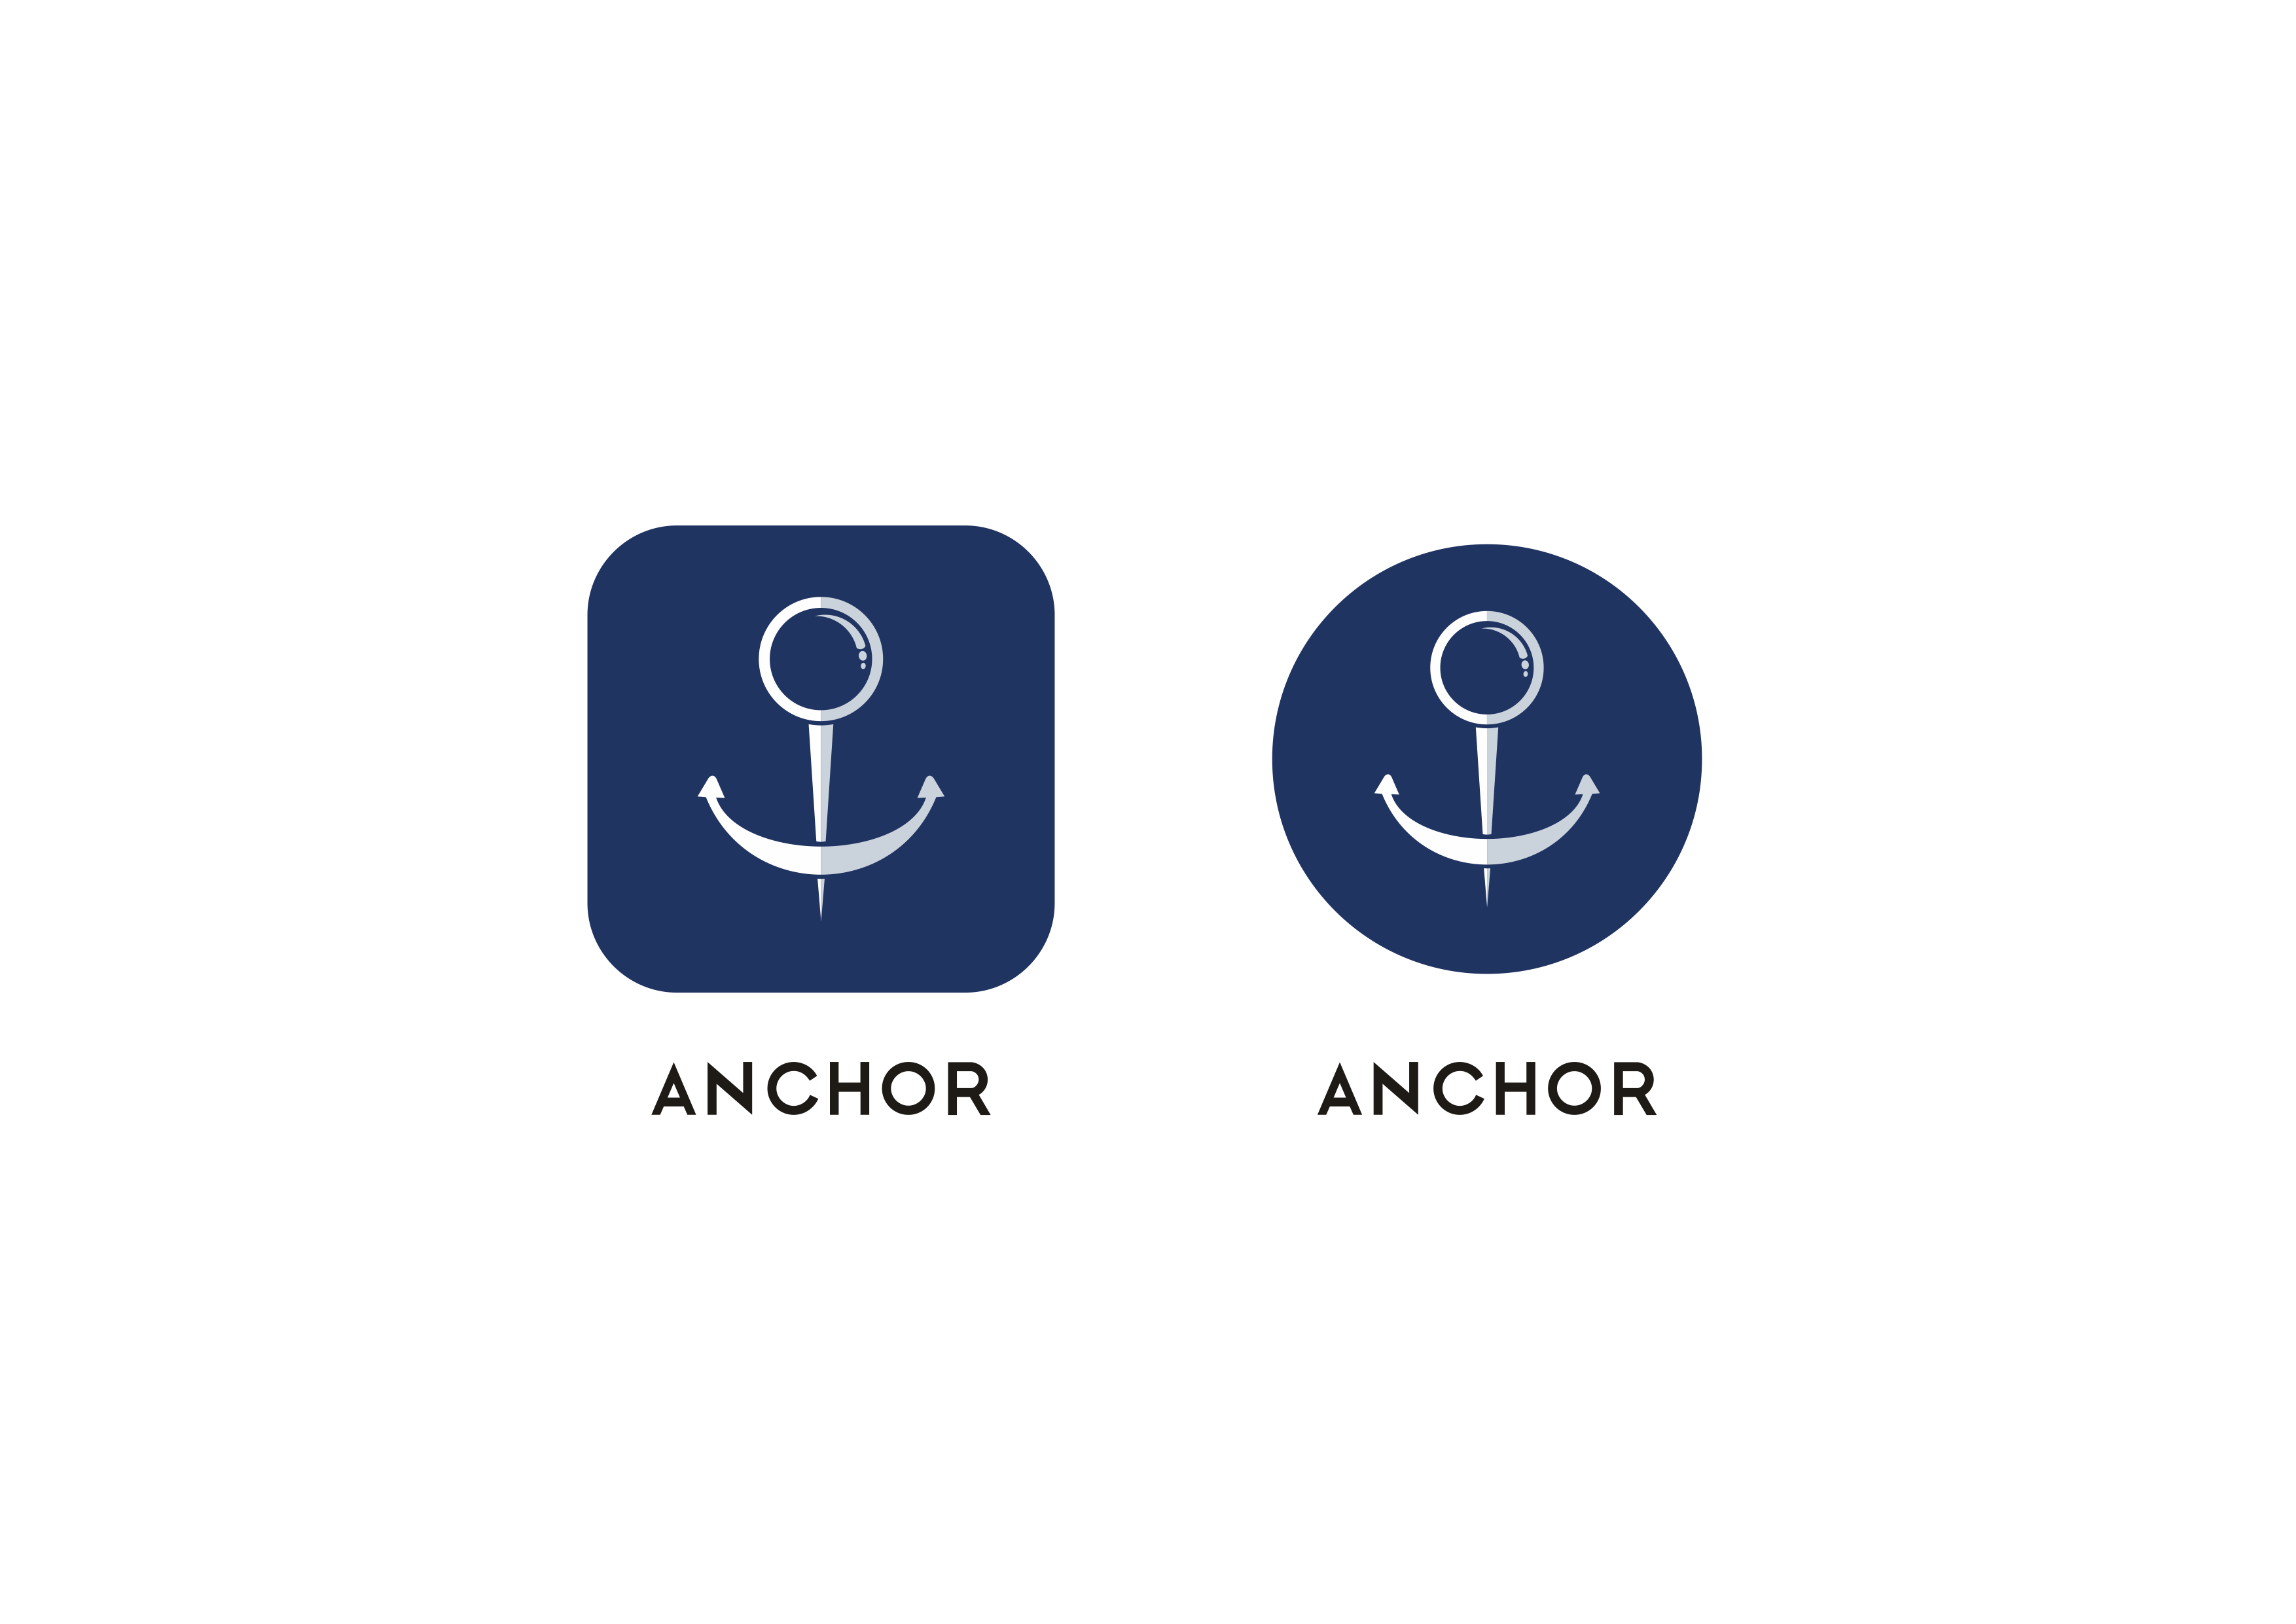 Design an anchor app logo that will attract millennials and baby boomers alike!